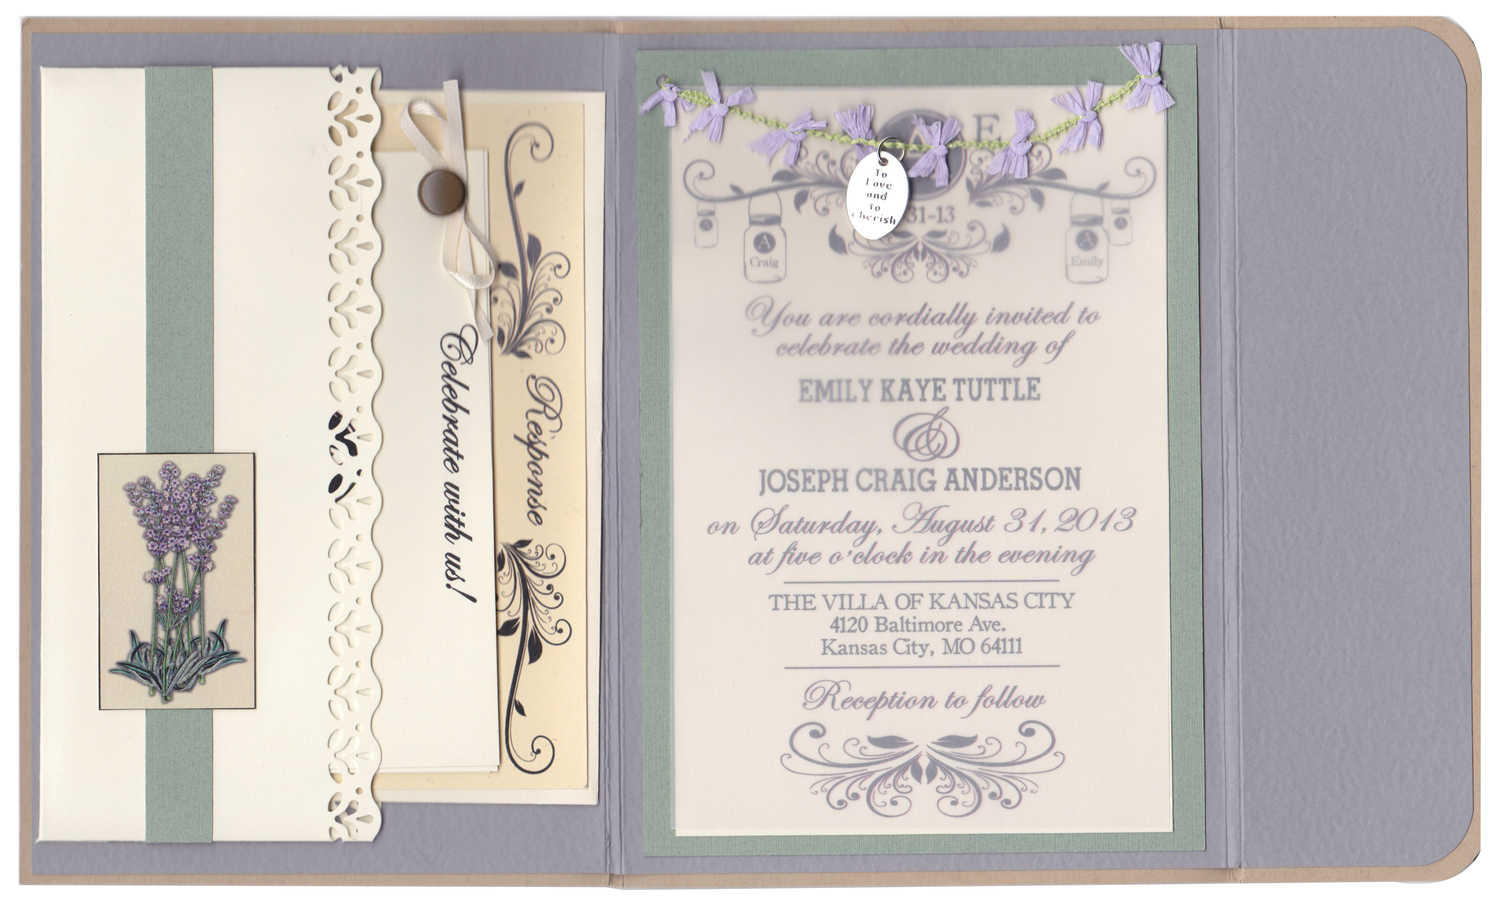 Wedding Invitations, Cards & Gifts — eMILY TUTTLe